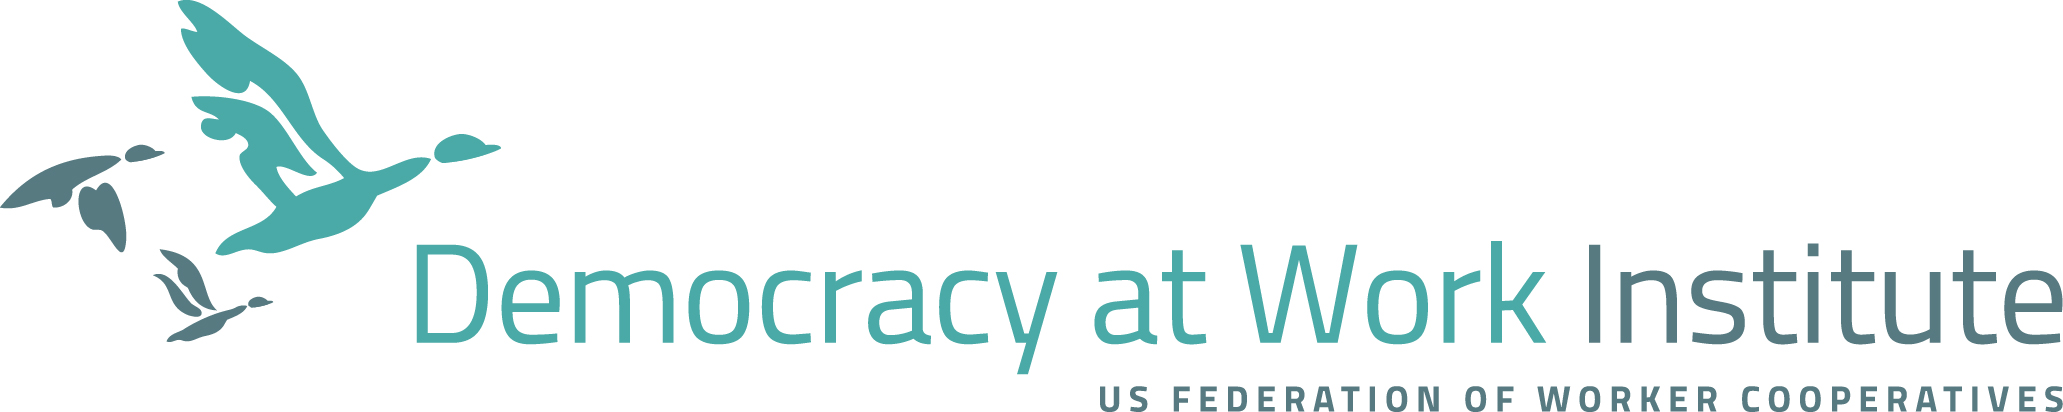 Democracy at Work Institute